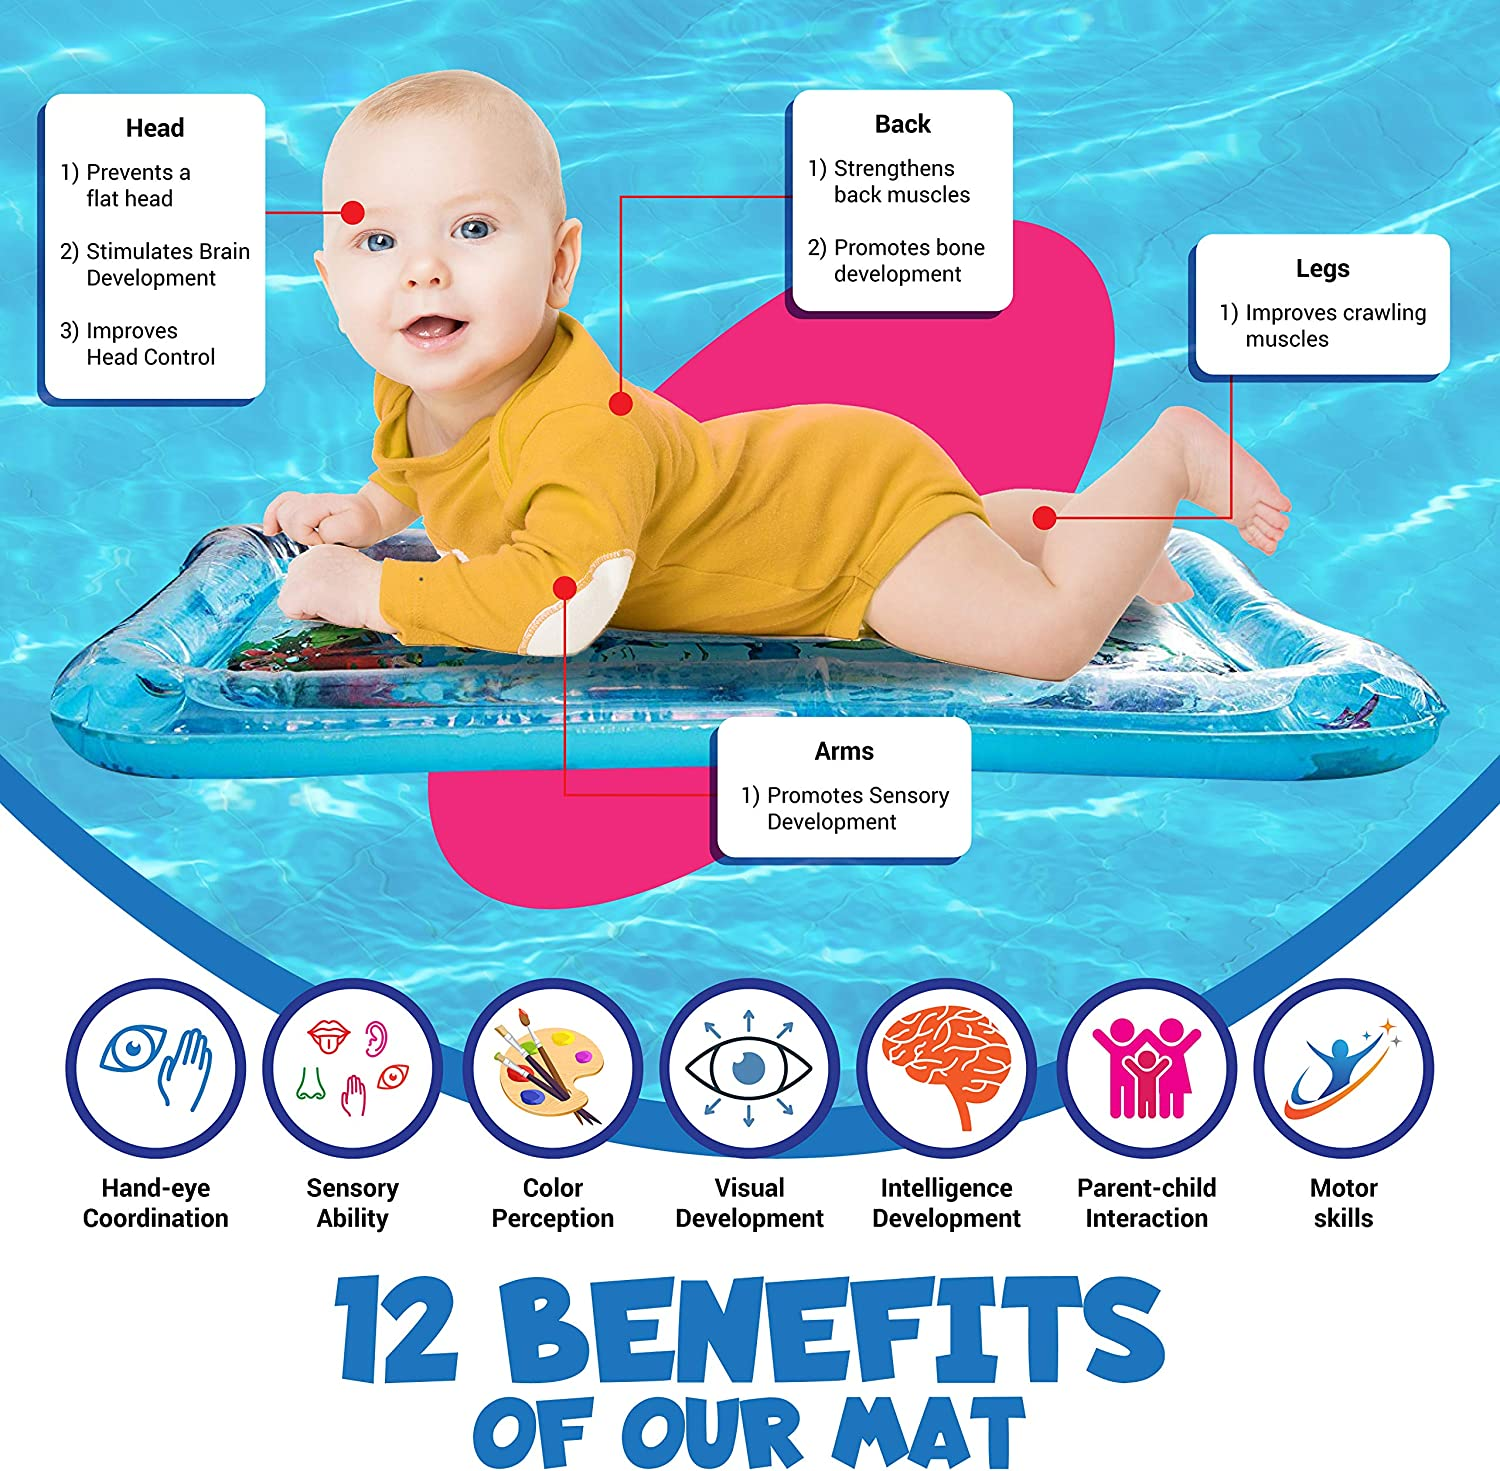 Baby Toys for 3-12 Months ModernHomeMaker Inflatable Tummy Time Water Play Mat for Infant 66x50cm Fun Activity Play Center for Boy /& Girl Growth Brain Development BPA-Free Baby and Toddlers